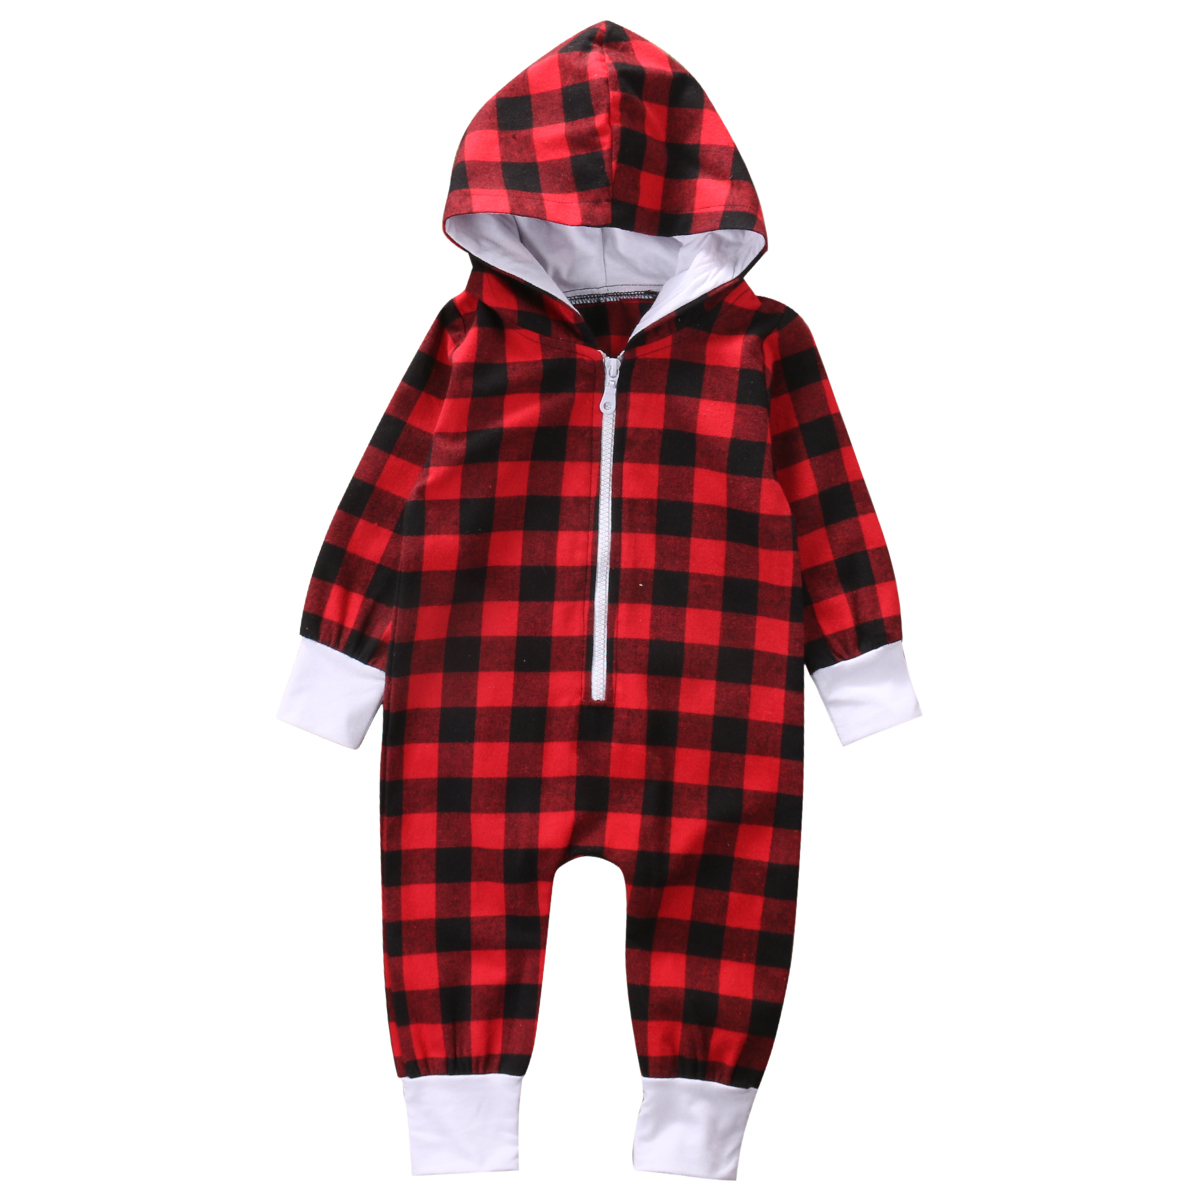 Long Sleeve Plaid Zipper Cute Jumpsuit Rompers Clothing Outfits Newborn Infant Baby Girl Cotton Clothes Romper baby rompers baby clothing fashion summer cotton infant jumpsuit newborn long sleeve girl boys rompers costumes bebes romper